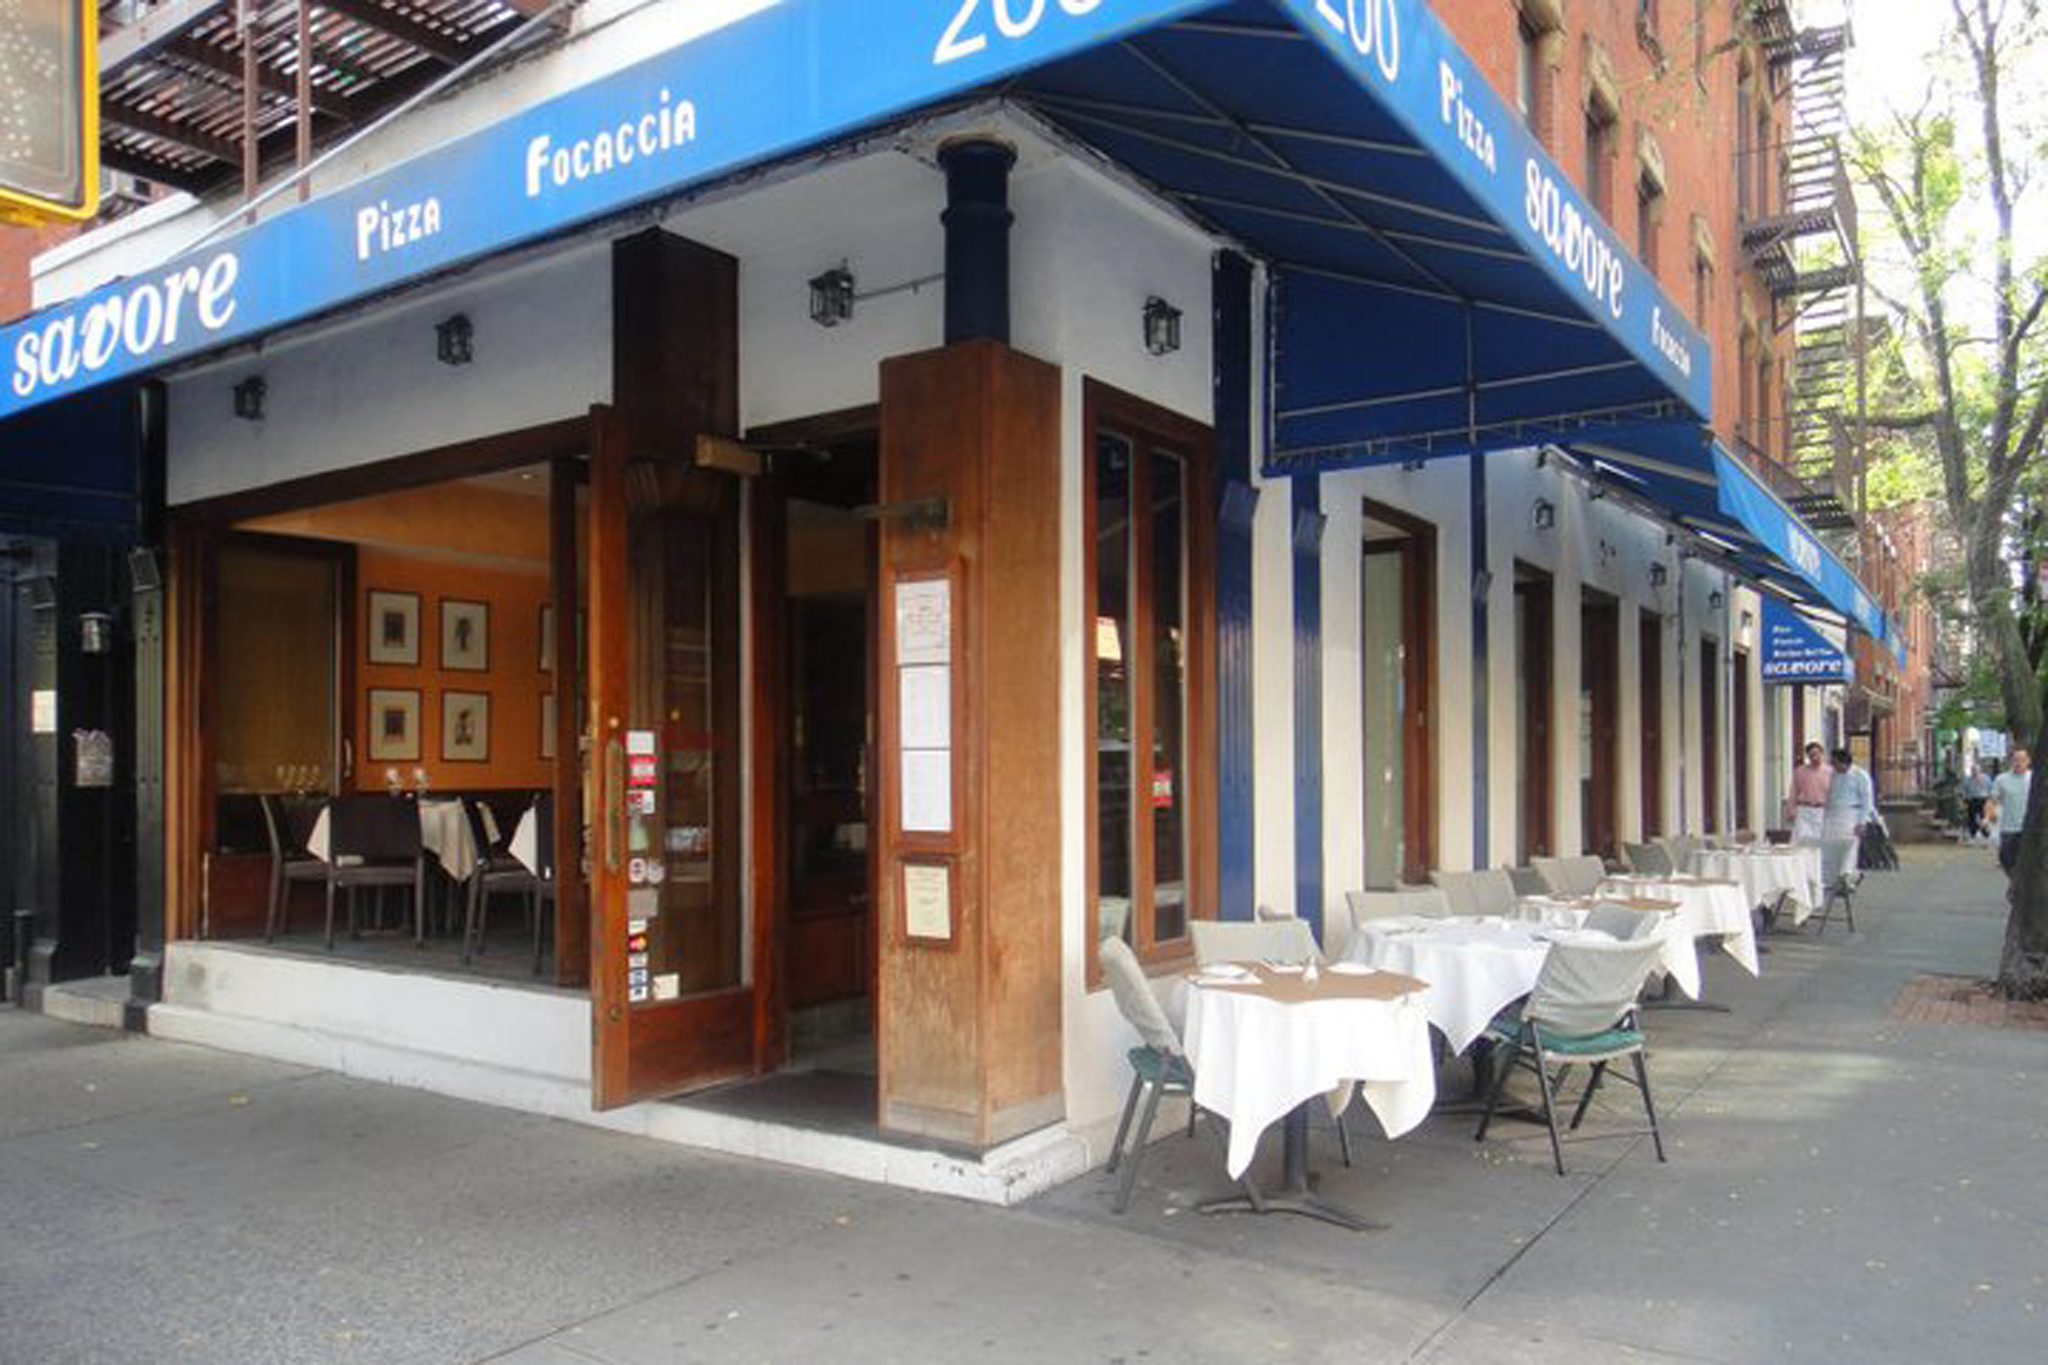 Cucina Piccola Soho Savore Restaurants In Soho New York